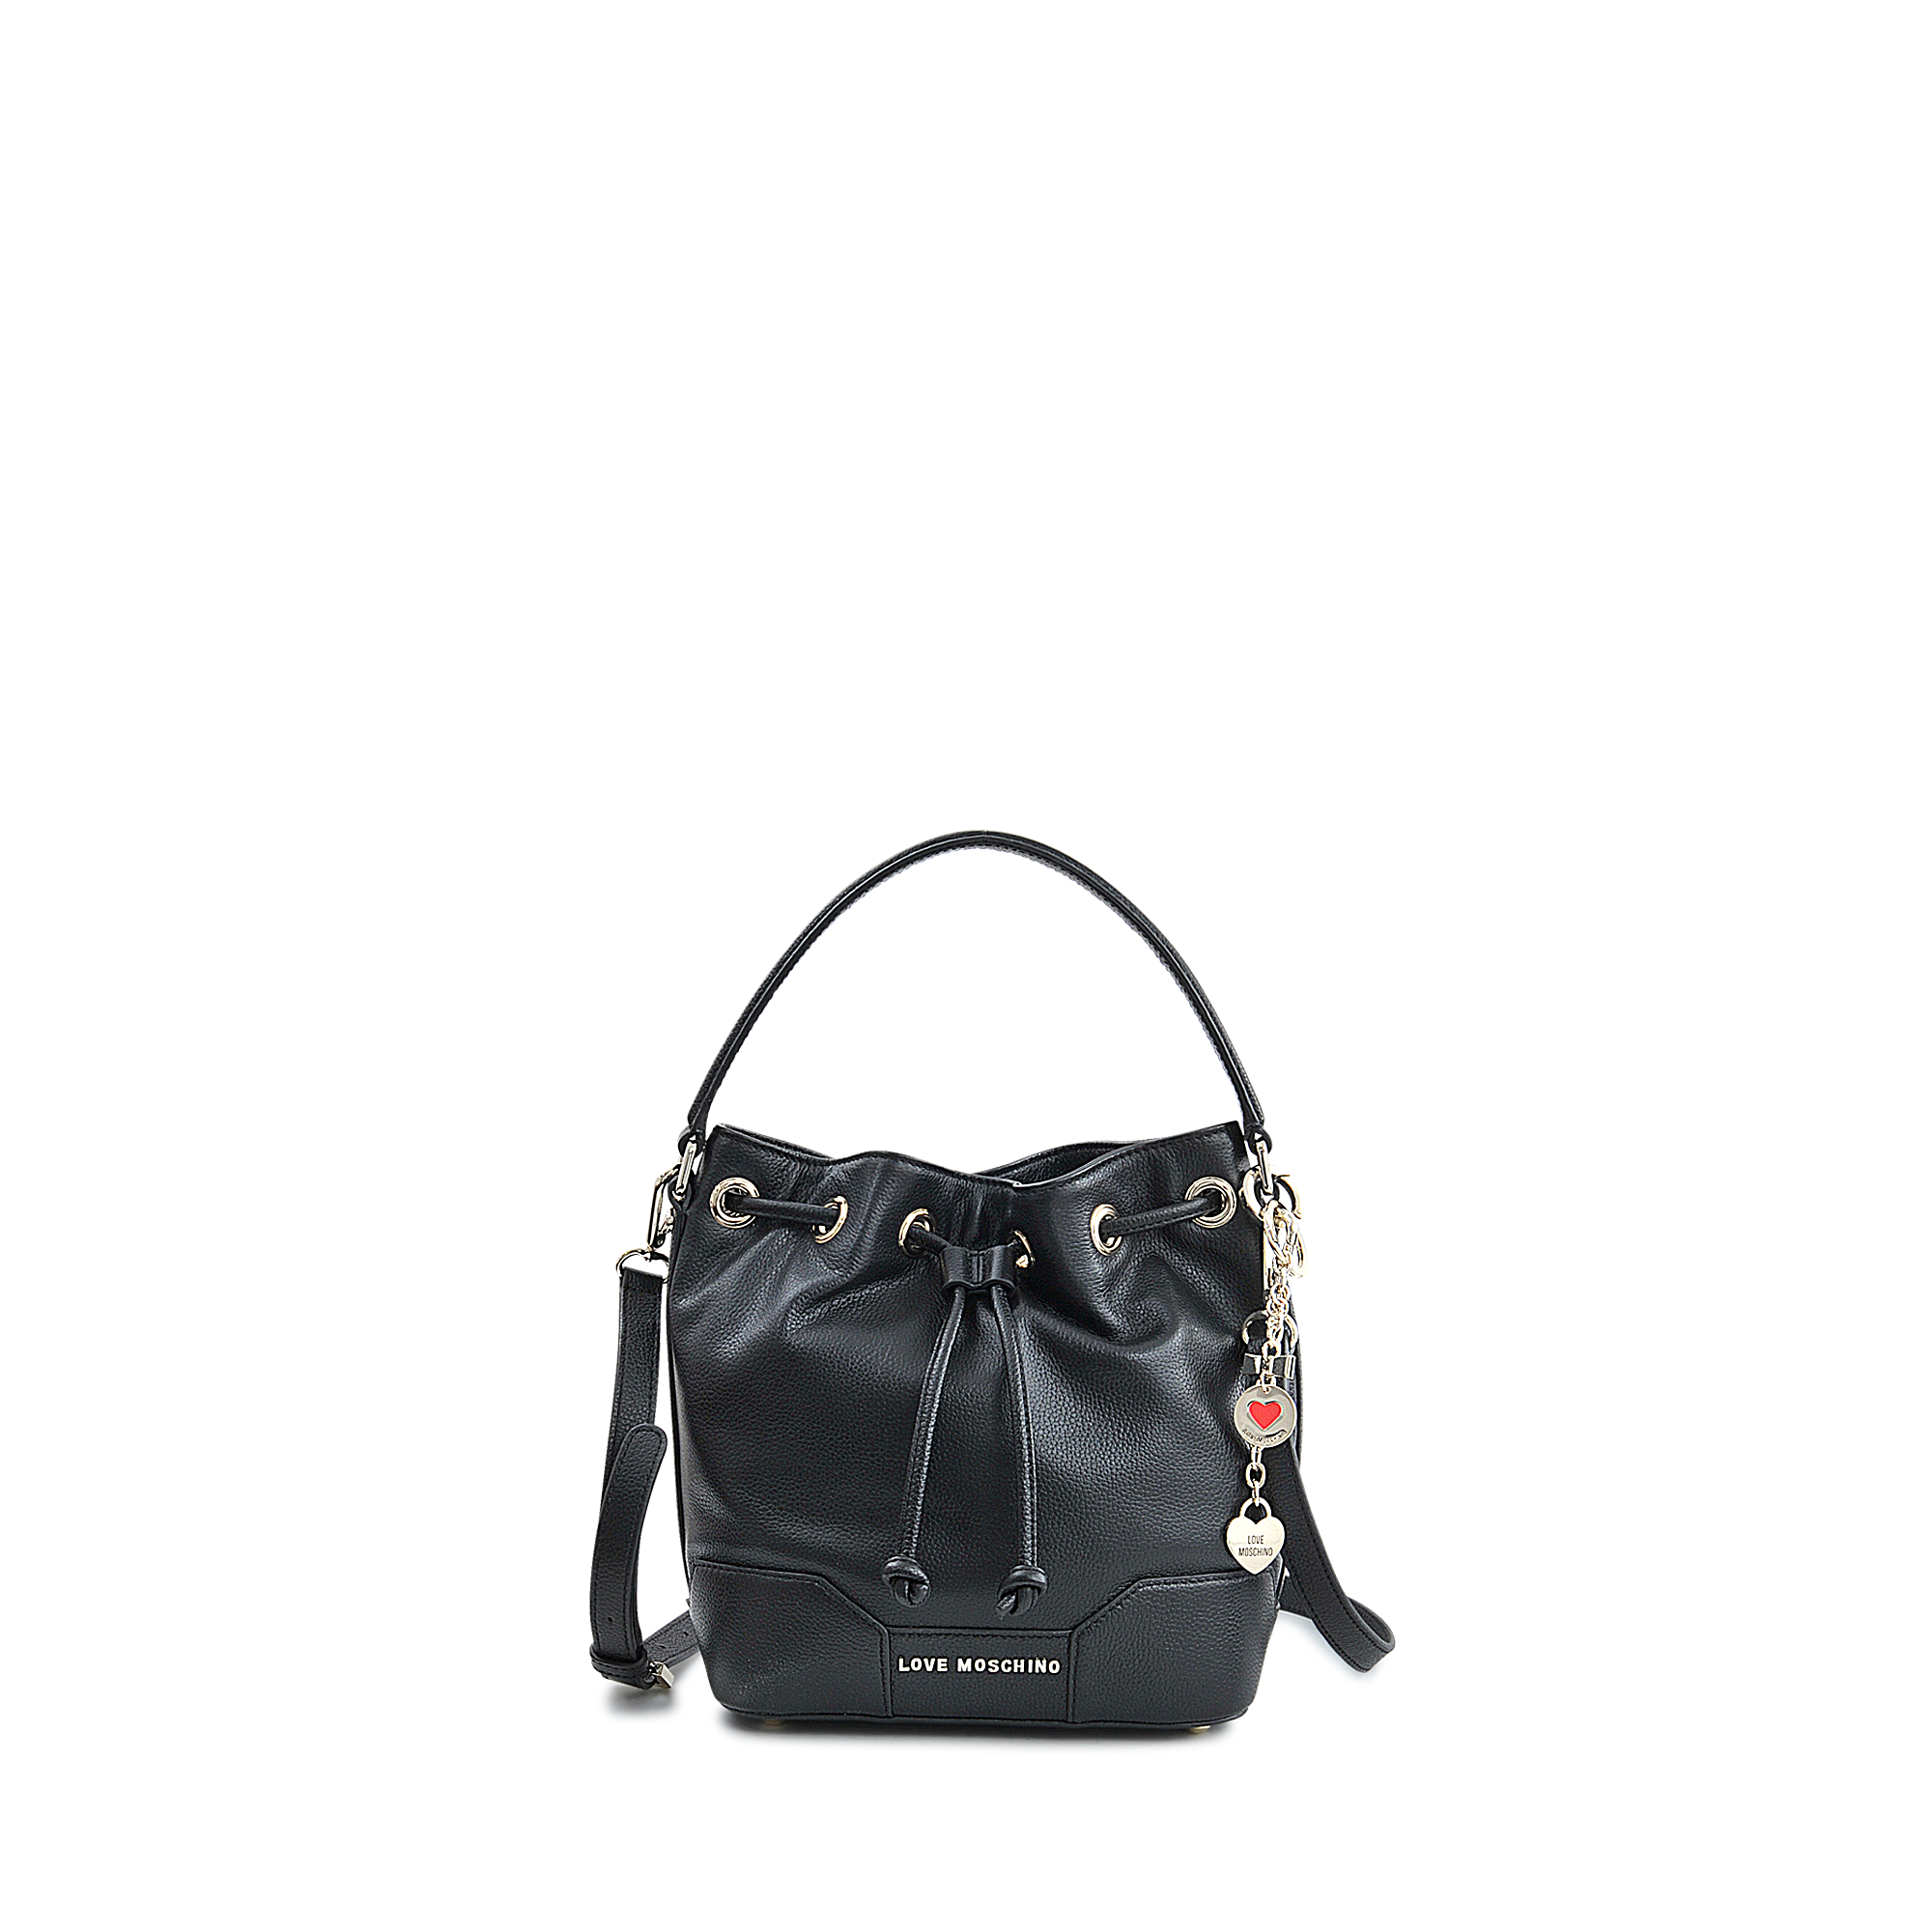 628ce191a Love Moschino Leather Lock Heart Bucket Bag in Black - Lyst